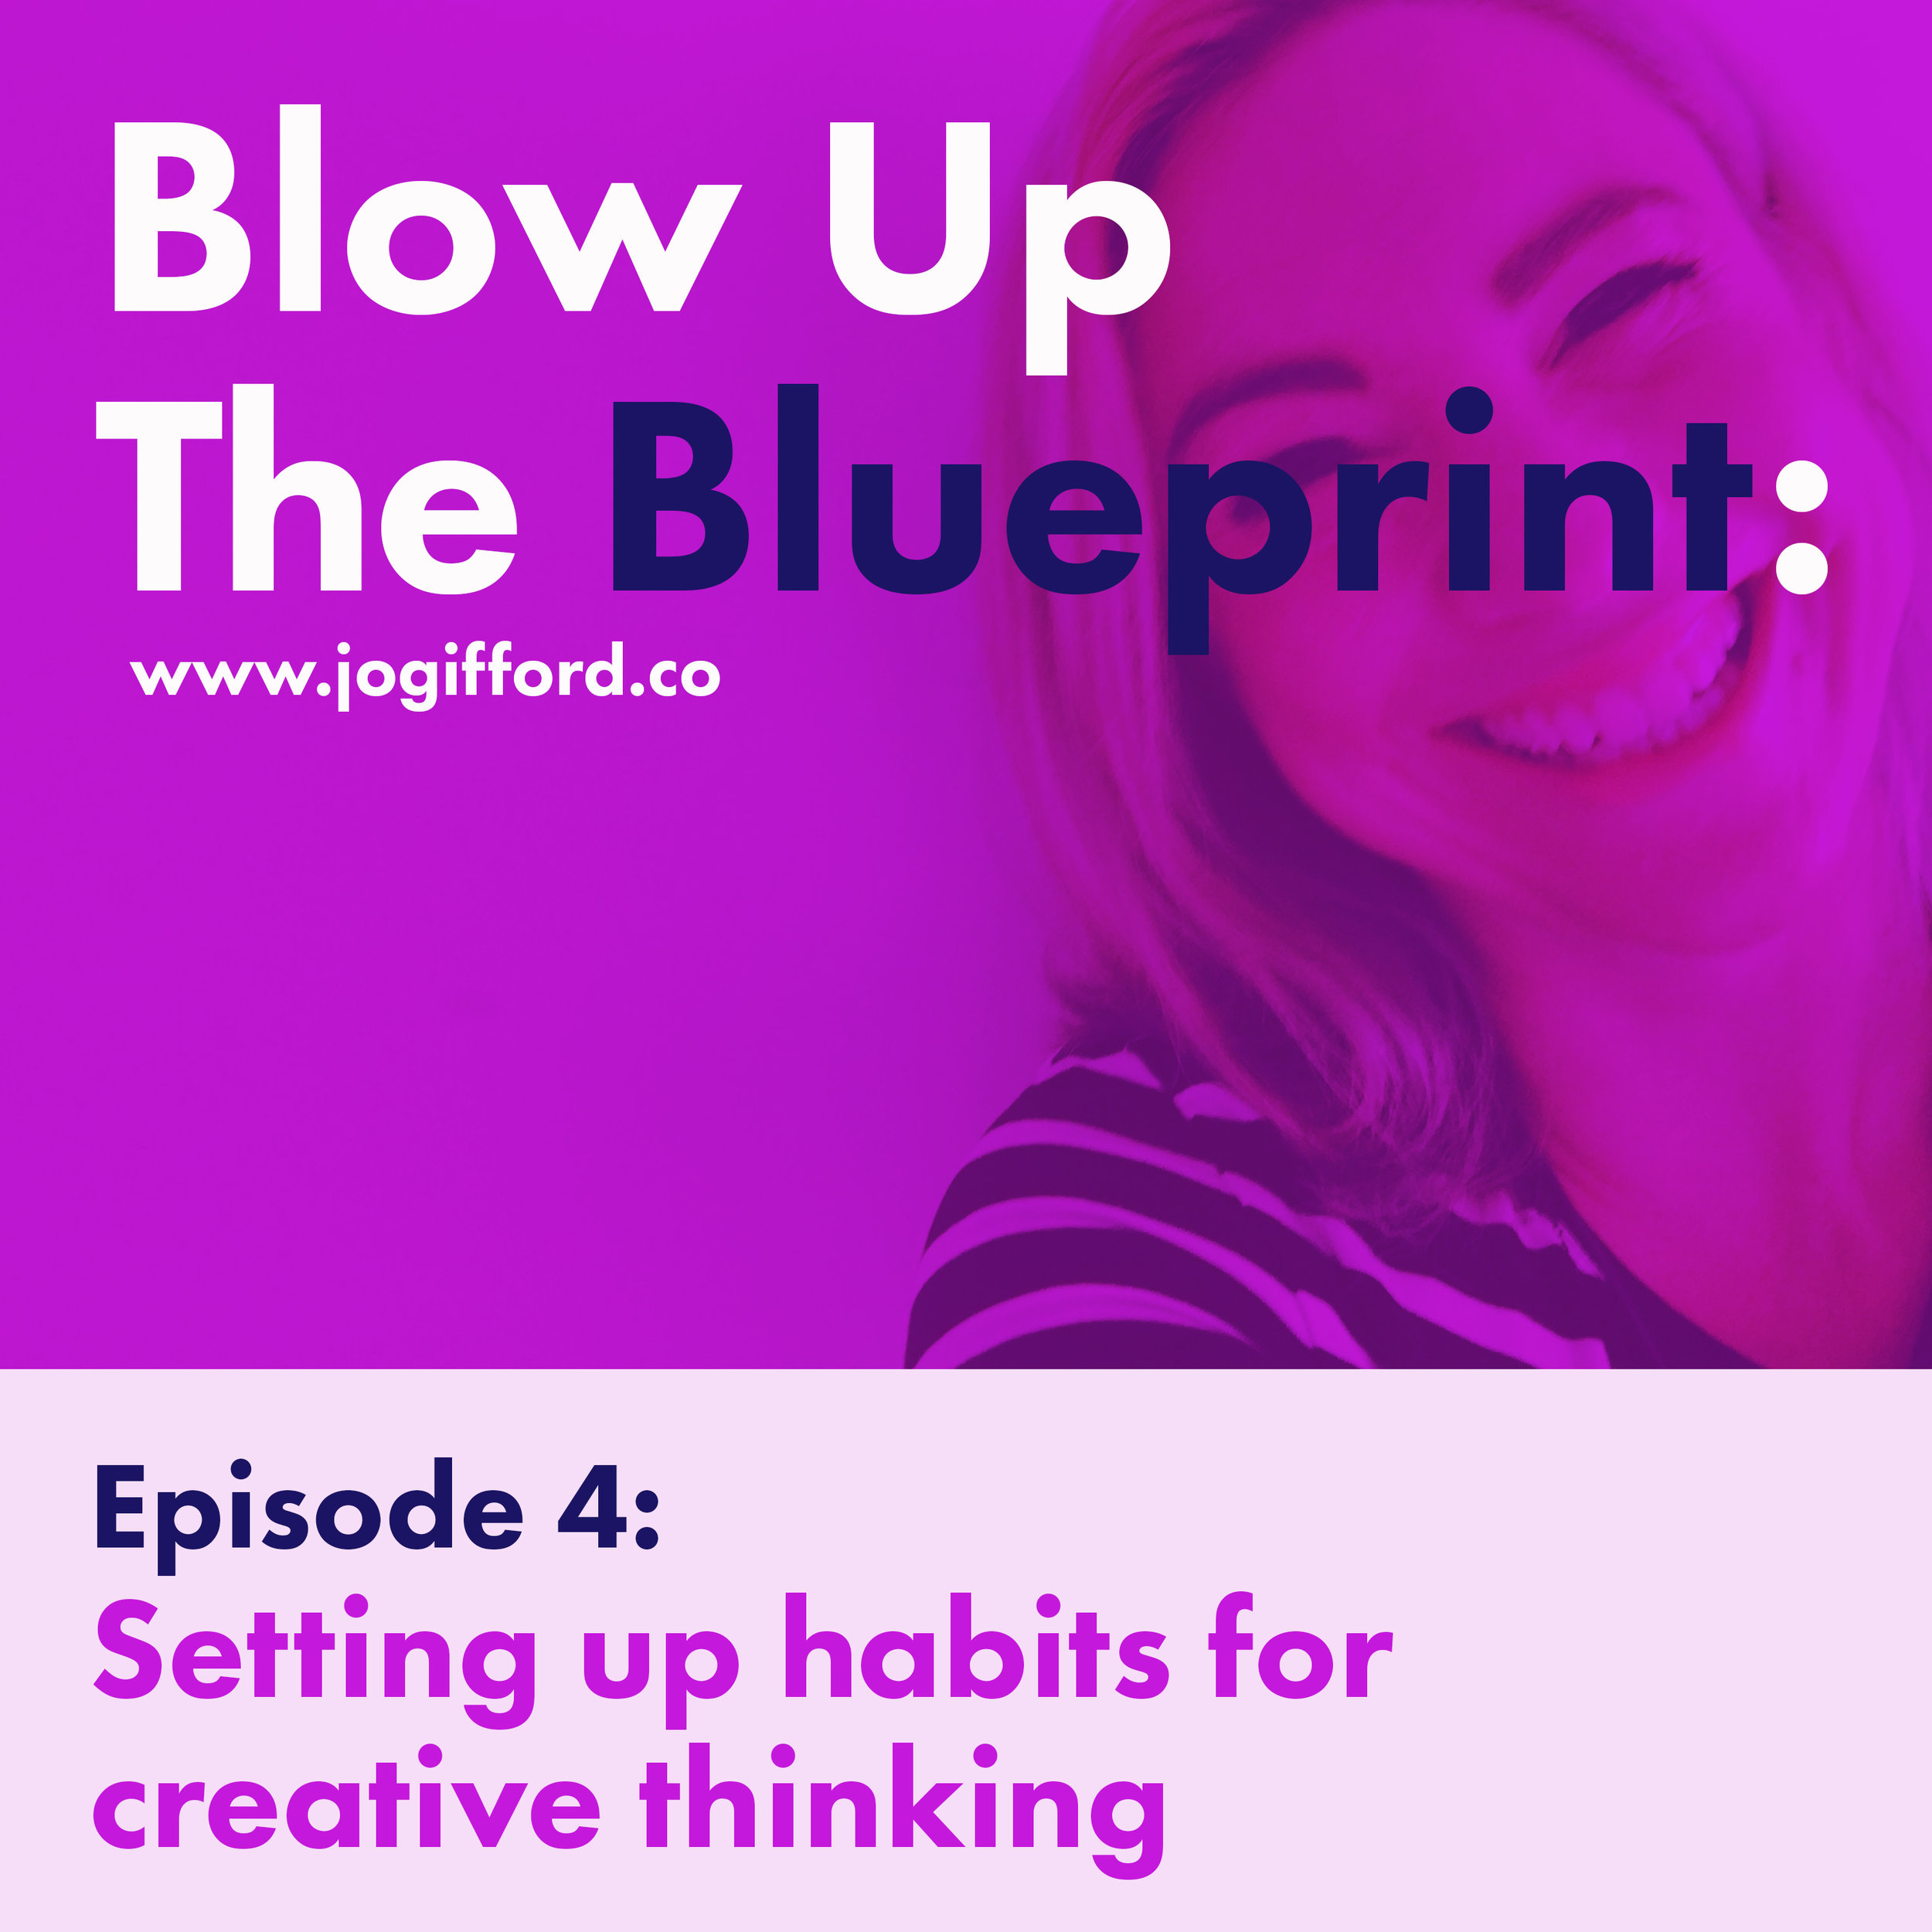 Podcast-Episode-4--Setting-up-habits-for-creative-thinking.jpg